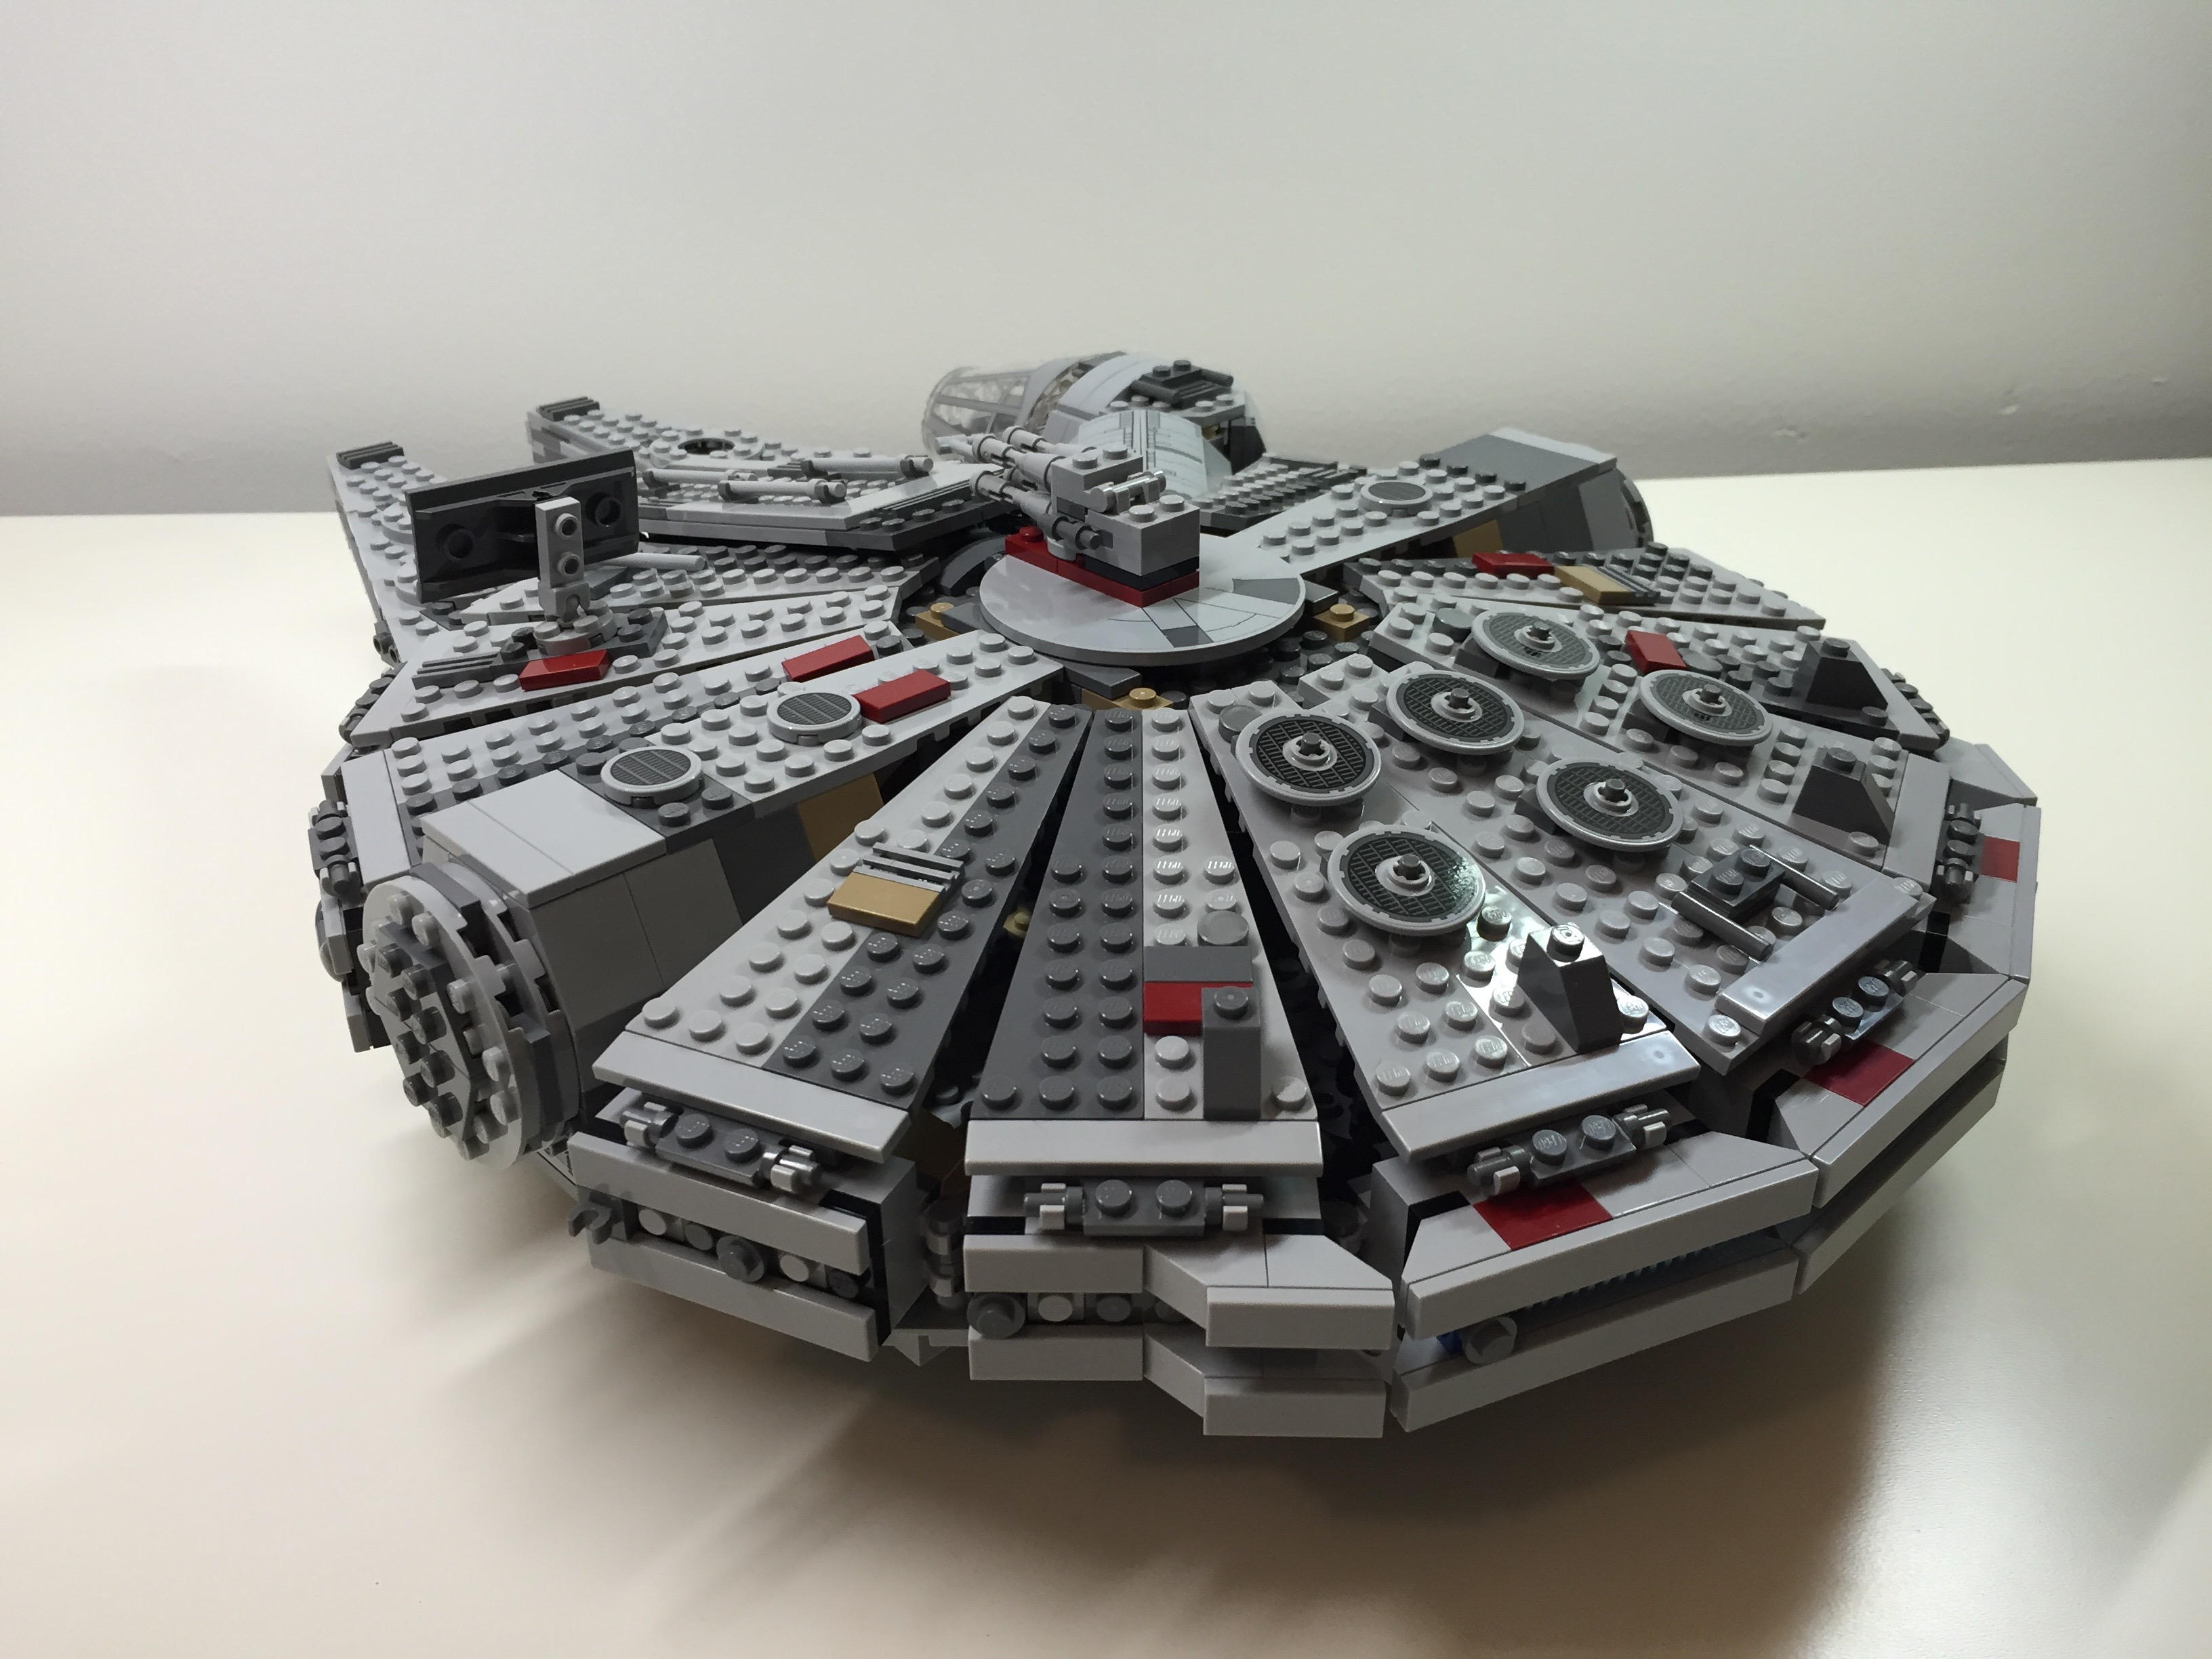 customized lego star wars millennium falcon 75105 from the force awakens dynamic subspace. Black Bedroom Furniture Sets. Home Design Ideas